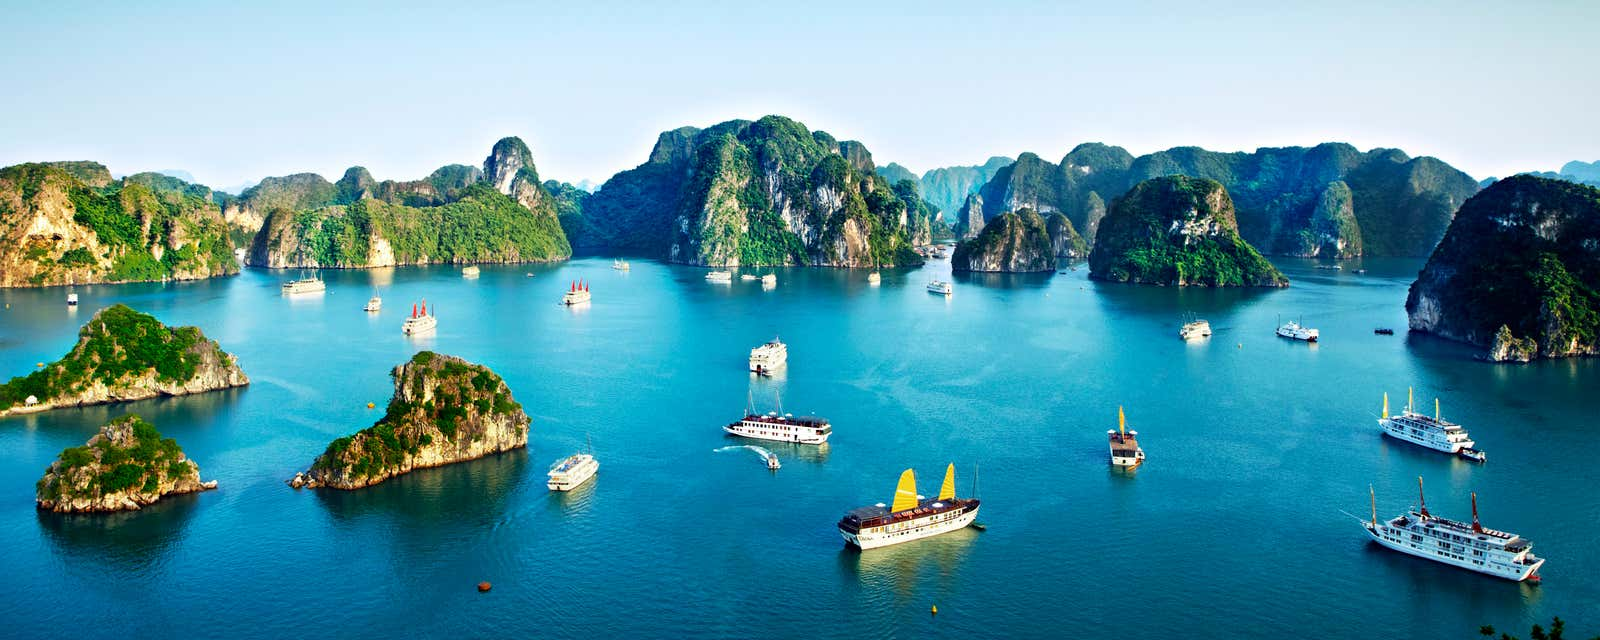 Chinese junks and cruise ships in Vietnam's Halong Bay.